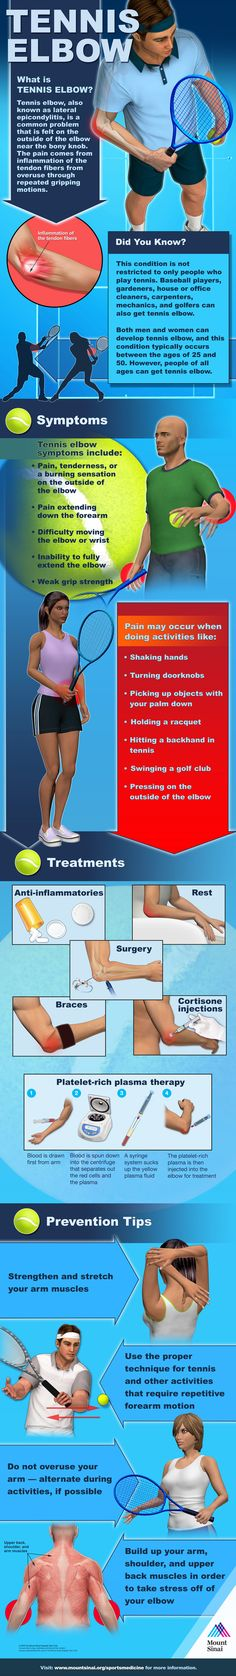 What is Tennis Elbow   #infographic #Health #TennisElbow